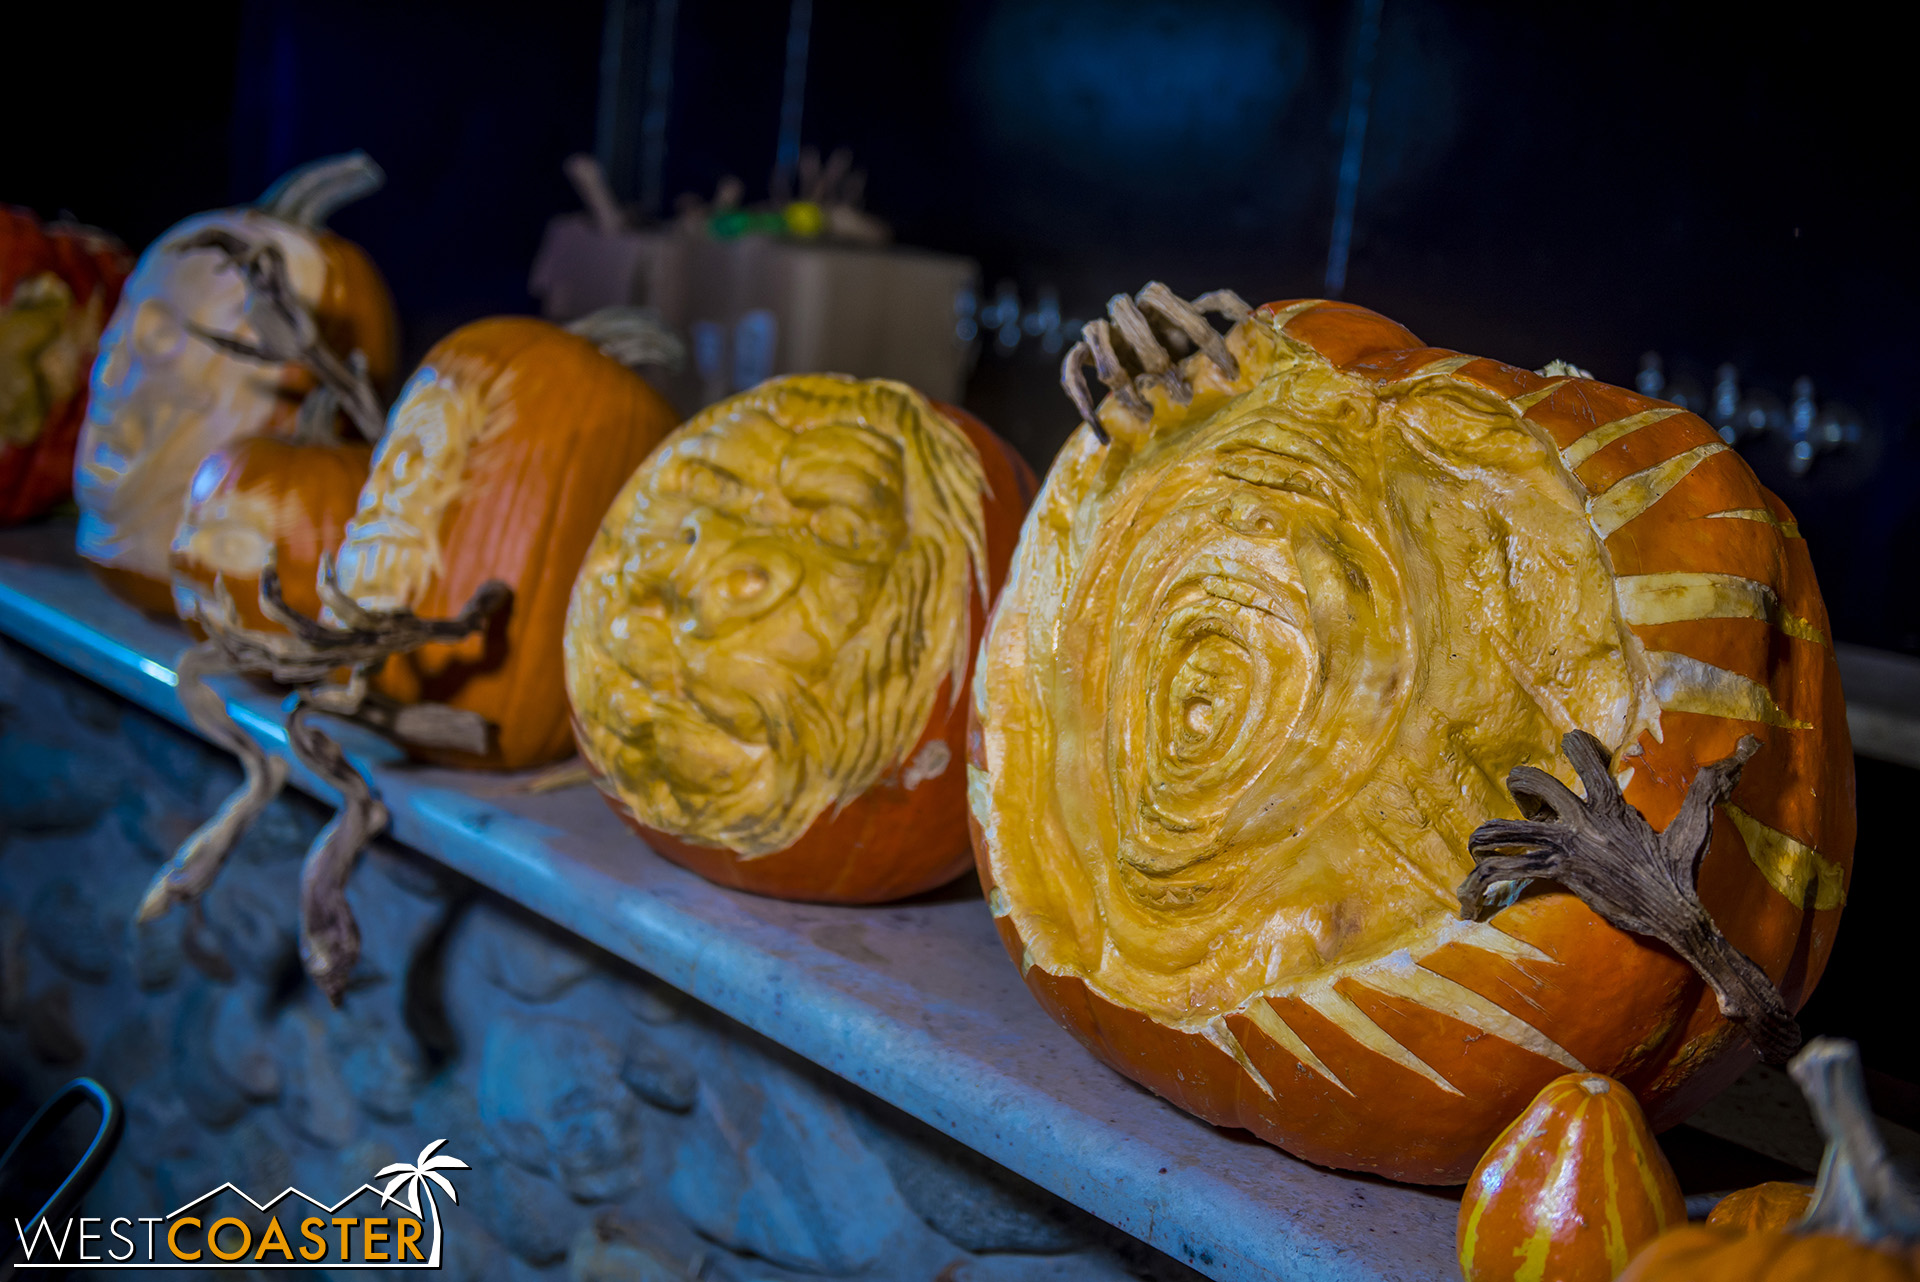 There was a pumpkin carver doing demonstrations, and he was pretty talented!